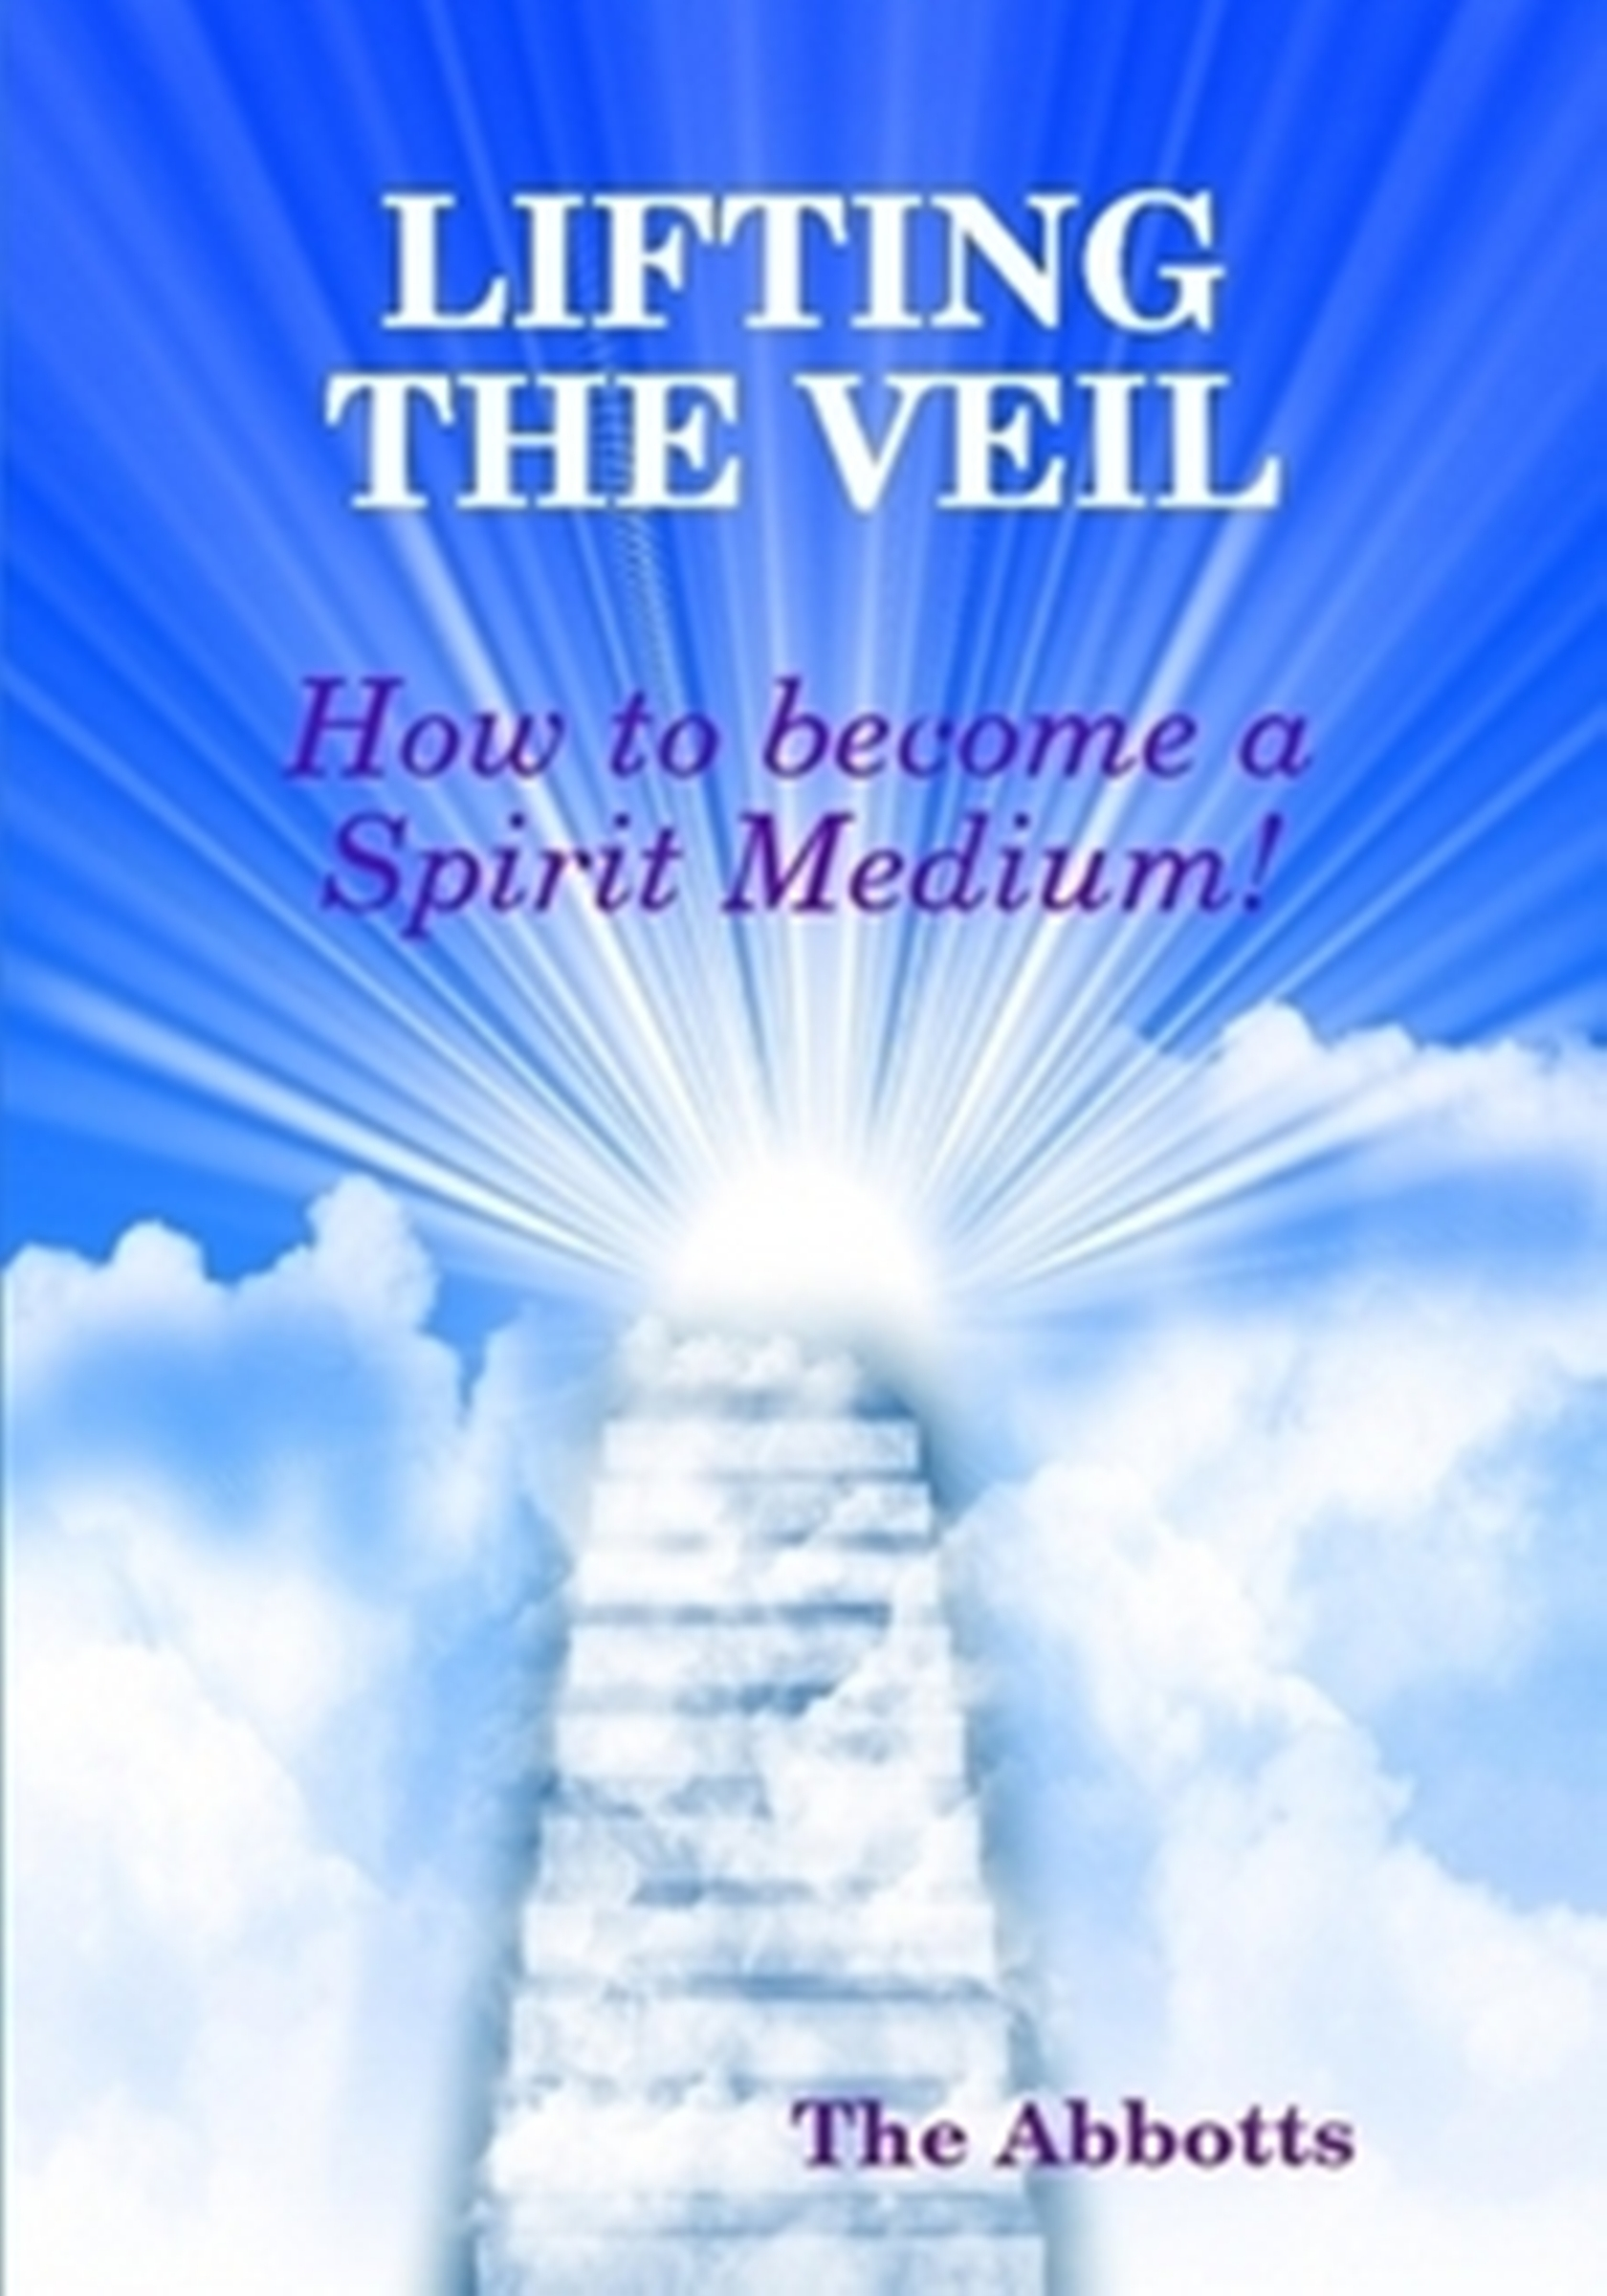 Lifting the Veil: How to Become a Spirit Medium